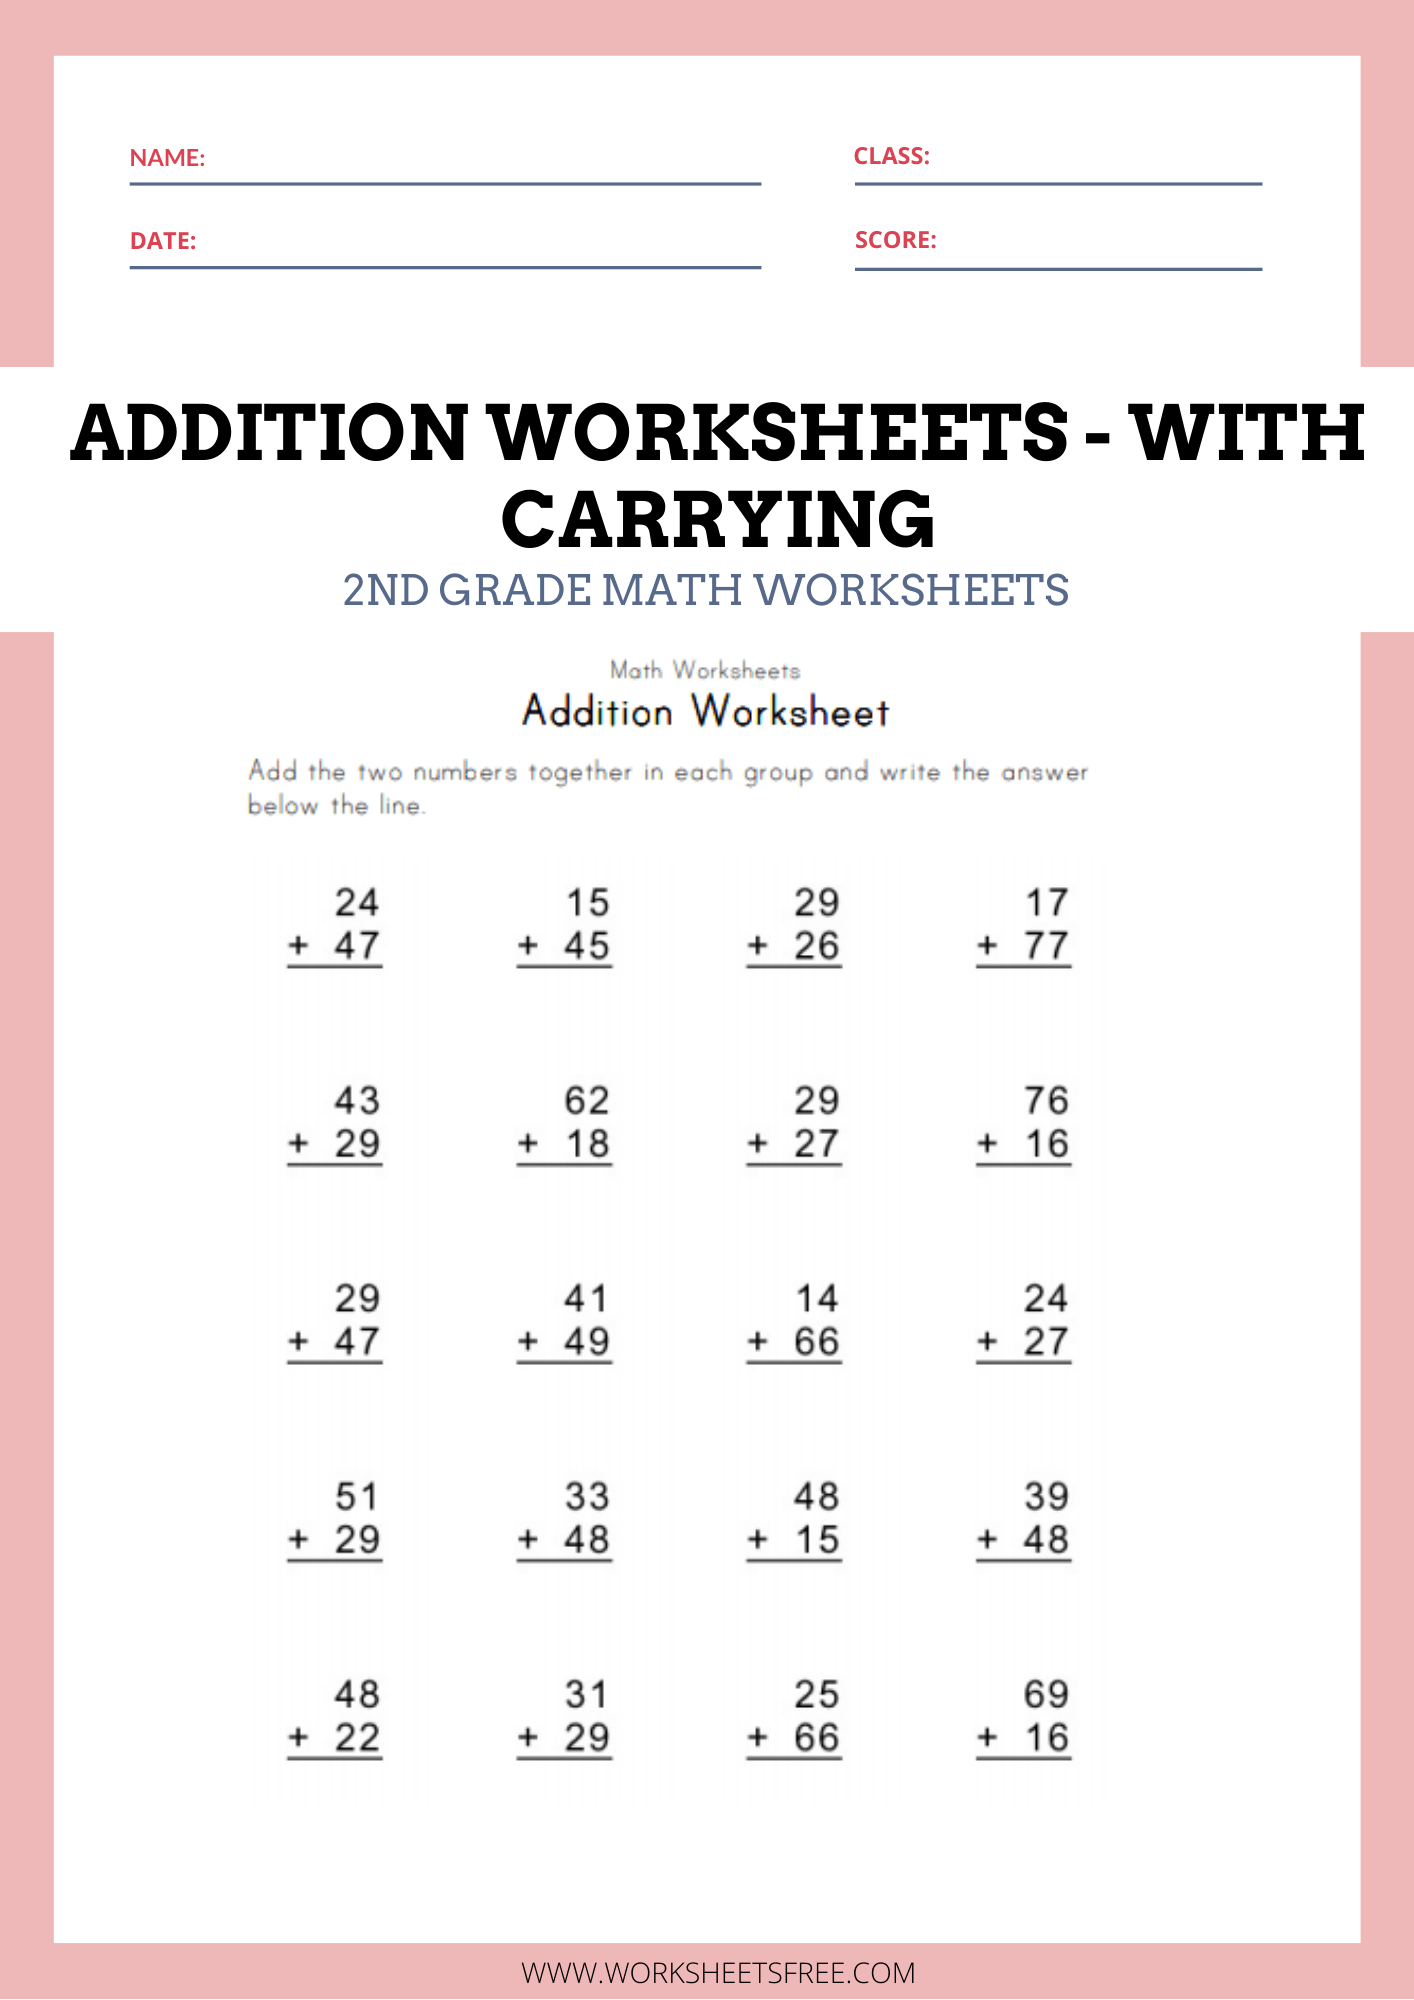 Addition Worksheets With Carrying Math Worksheets